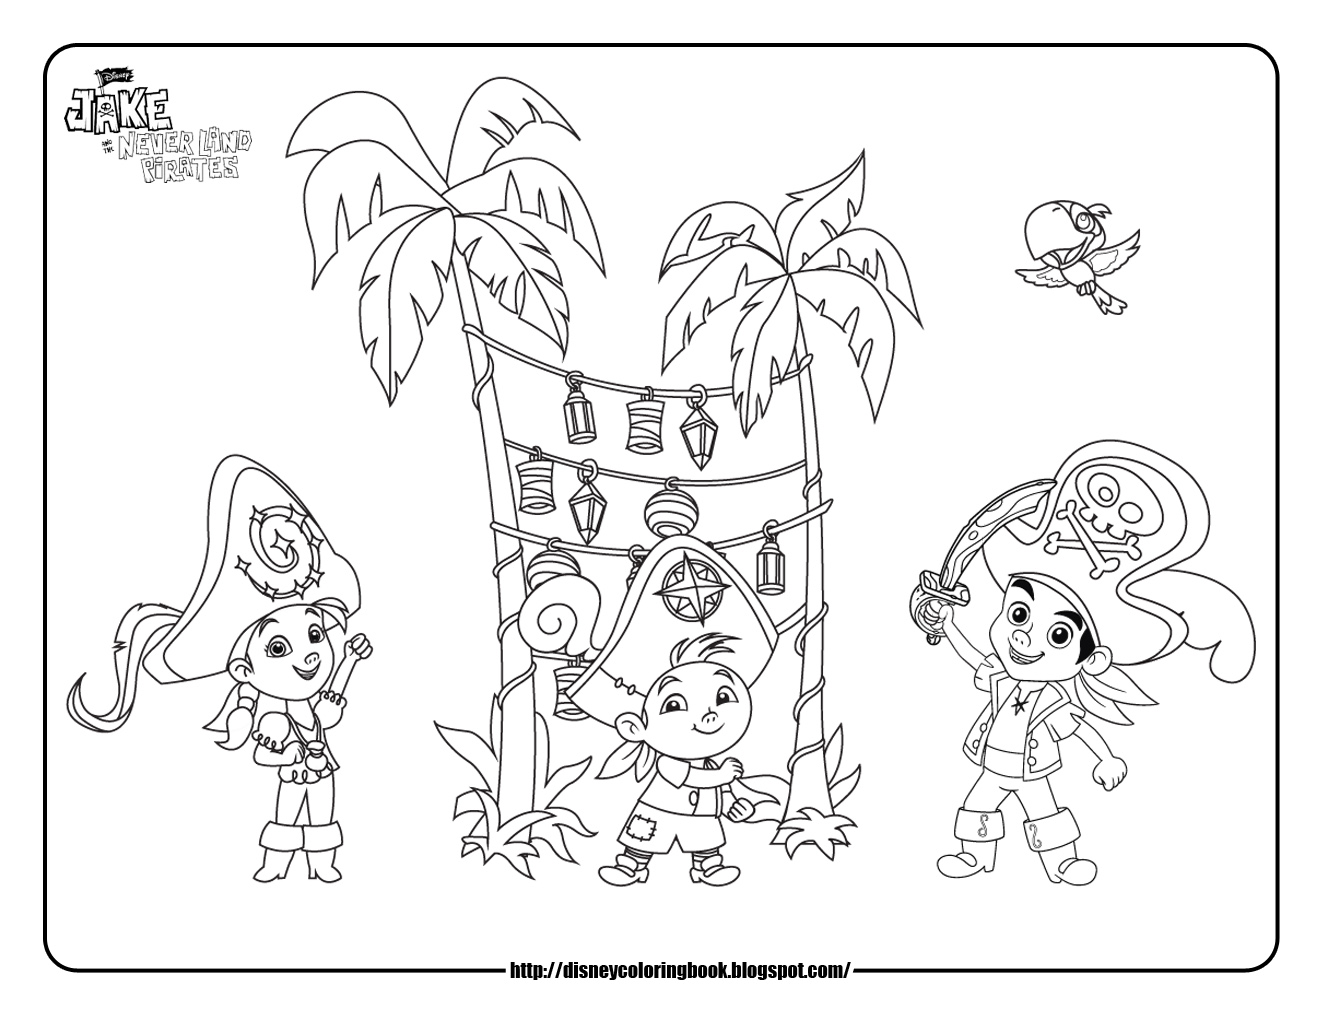 Learn to coloring august 2011 for Jake and the pirates coloring pages